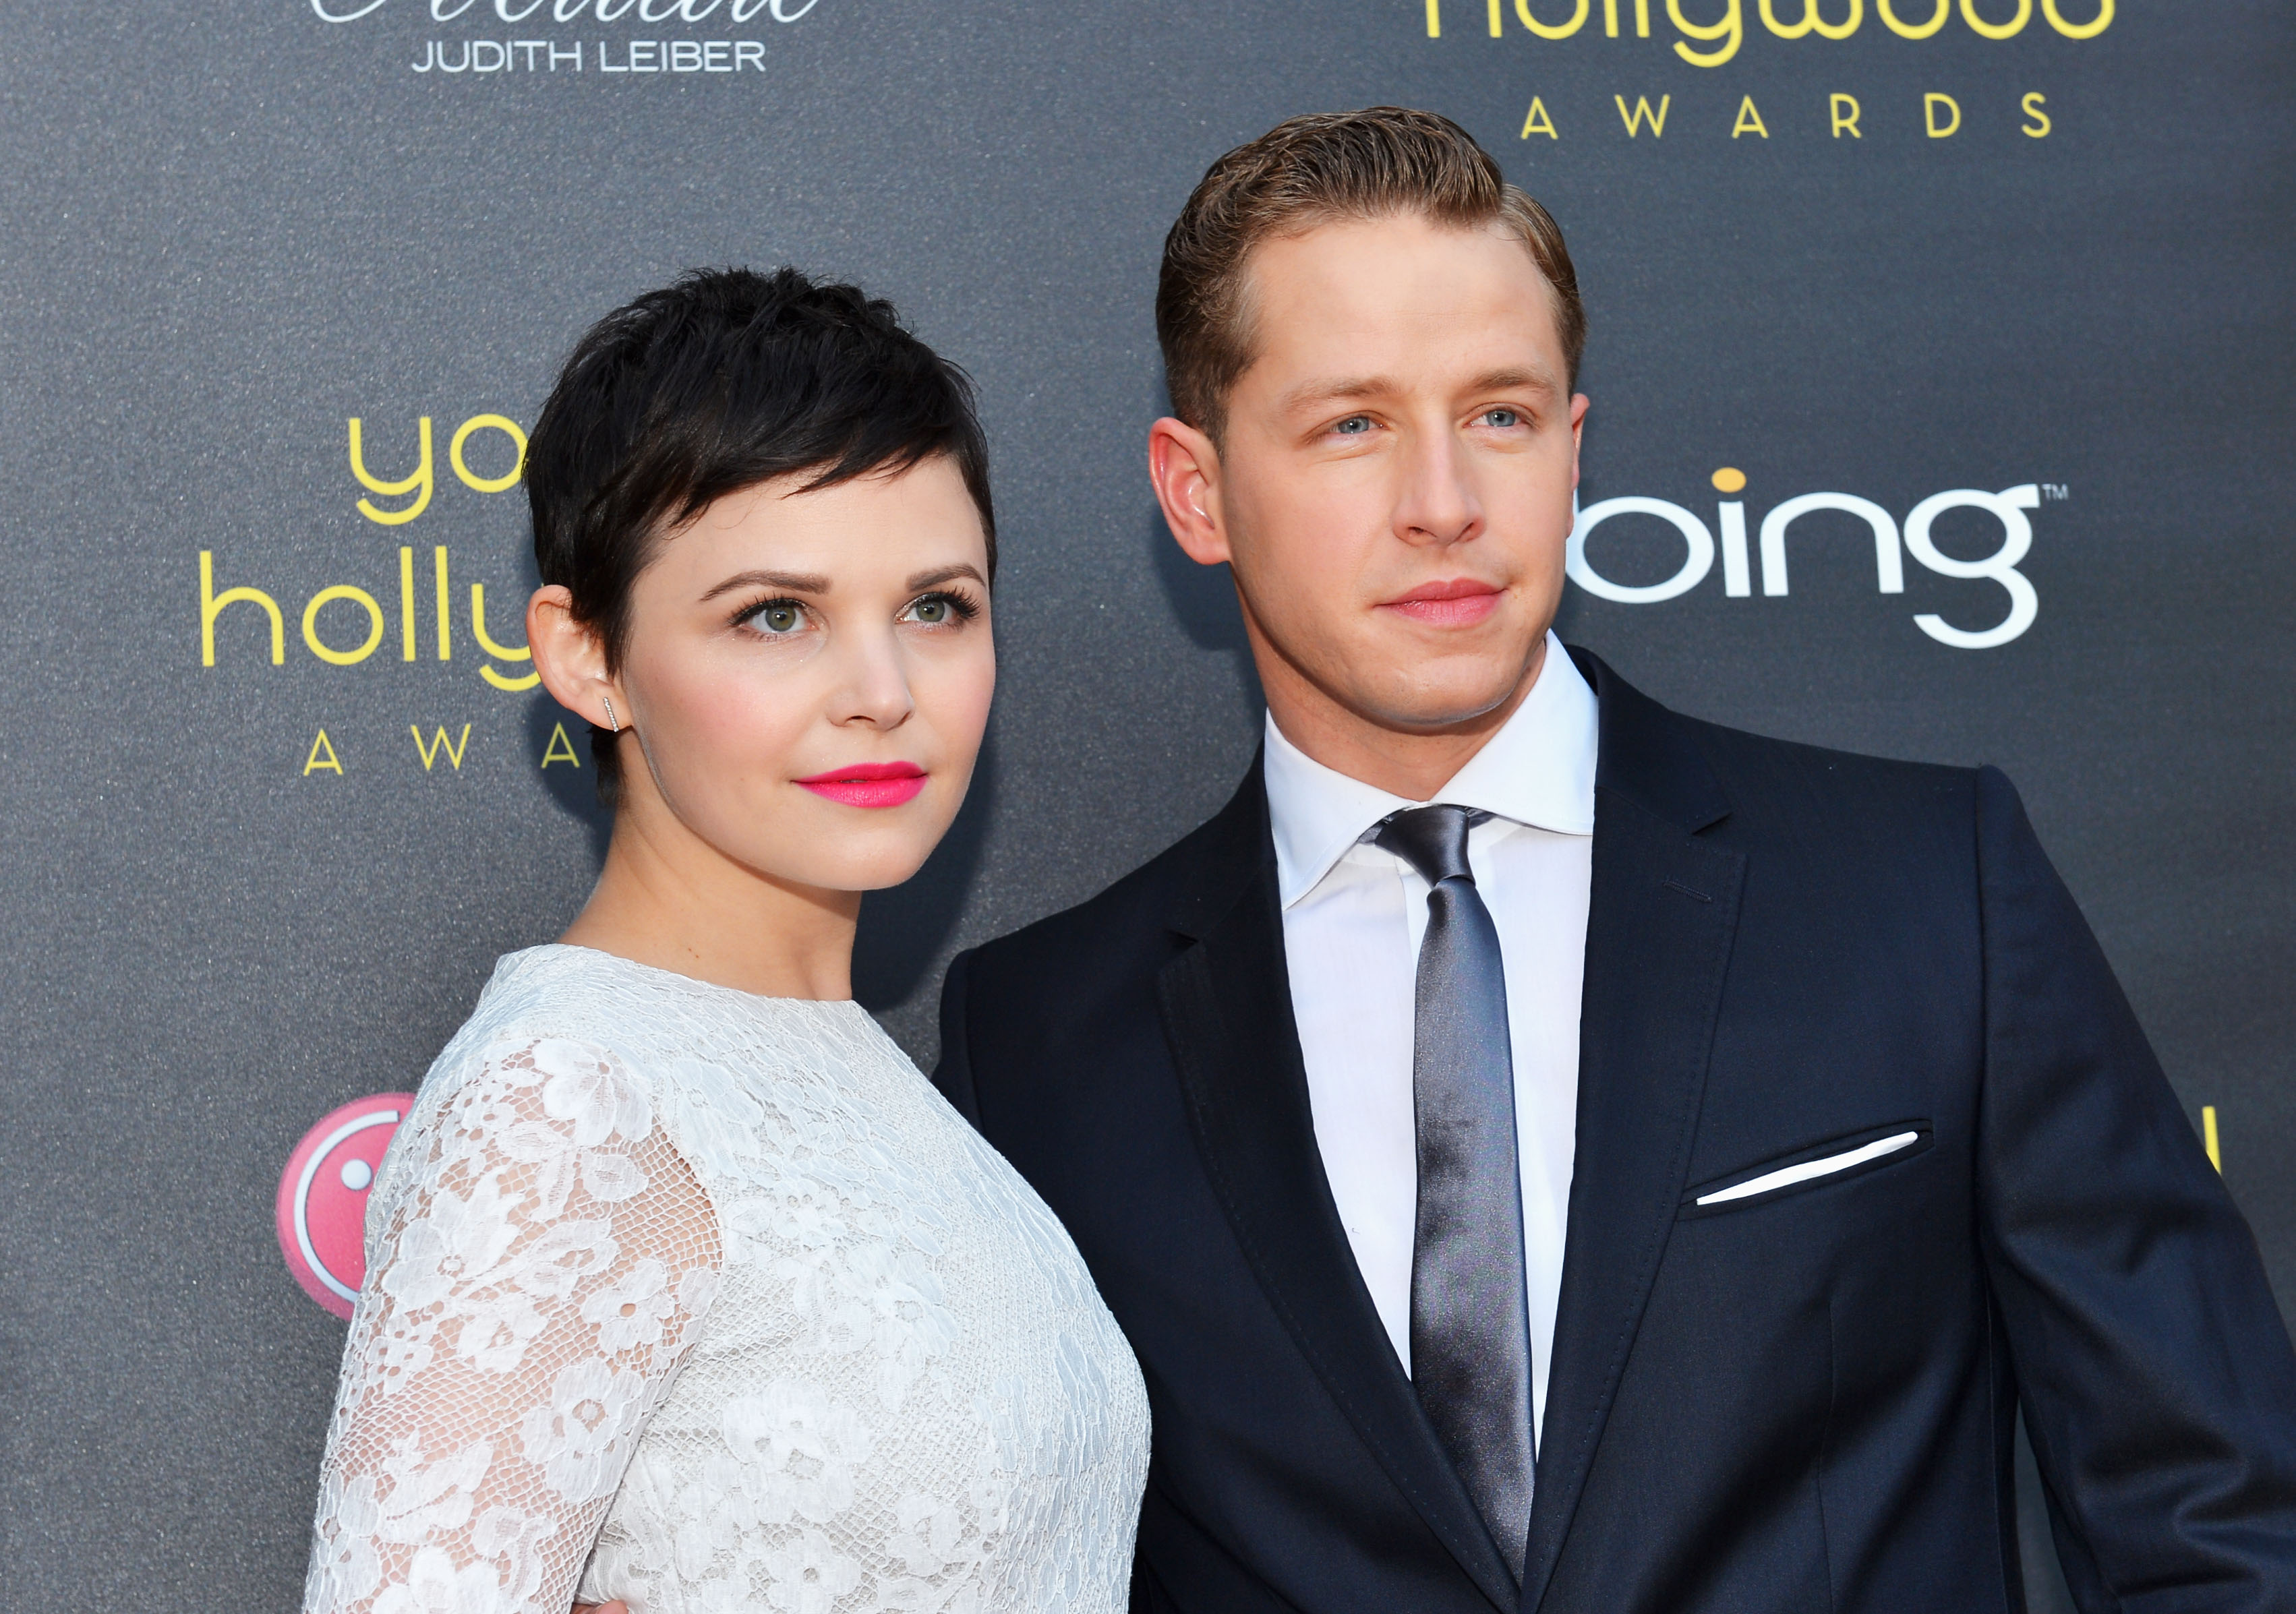 Ginnifer Goodwin and Josh Dallas arrive at 14th Annual Young Hollywood Awards